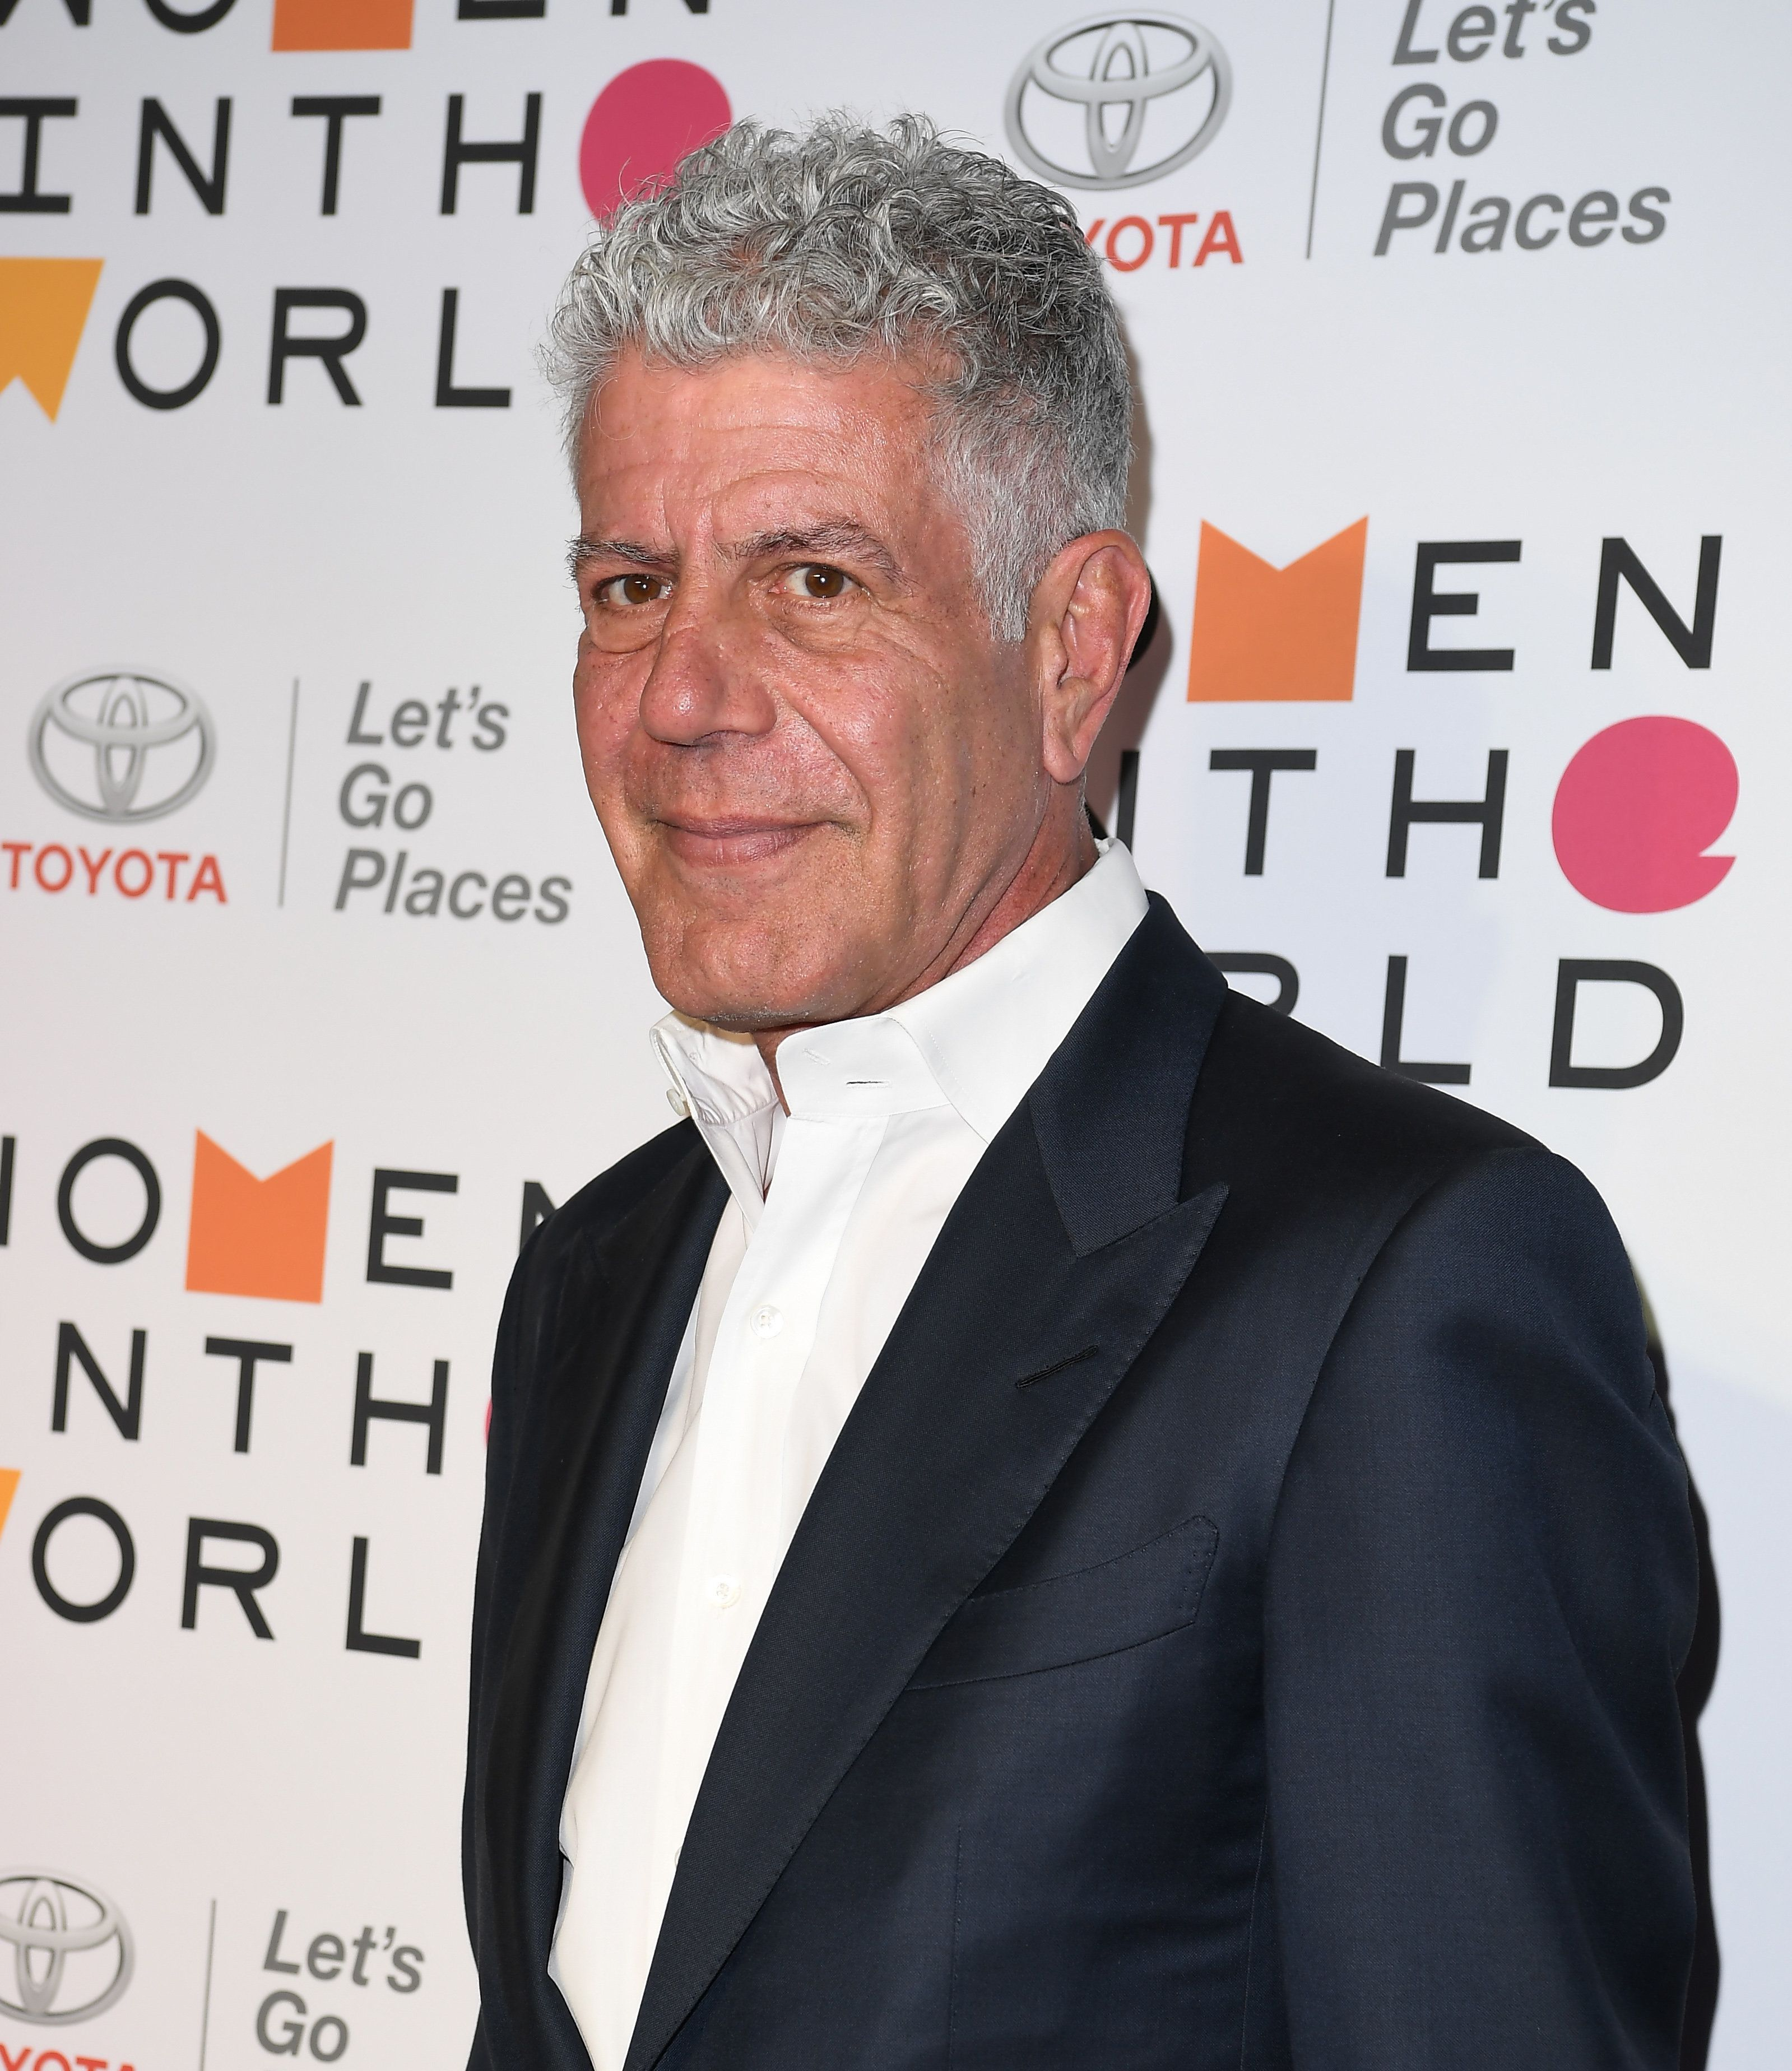 Anthony Bourdain attends the 2018 Women In The World Summit at Lincoln Center on April 12, 2018 in New York City. (Photo by ANGELA WEISS / AFP)        (Photo credit should read ANGELA WEISS/AFP/Getty Images)